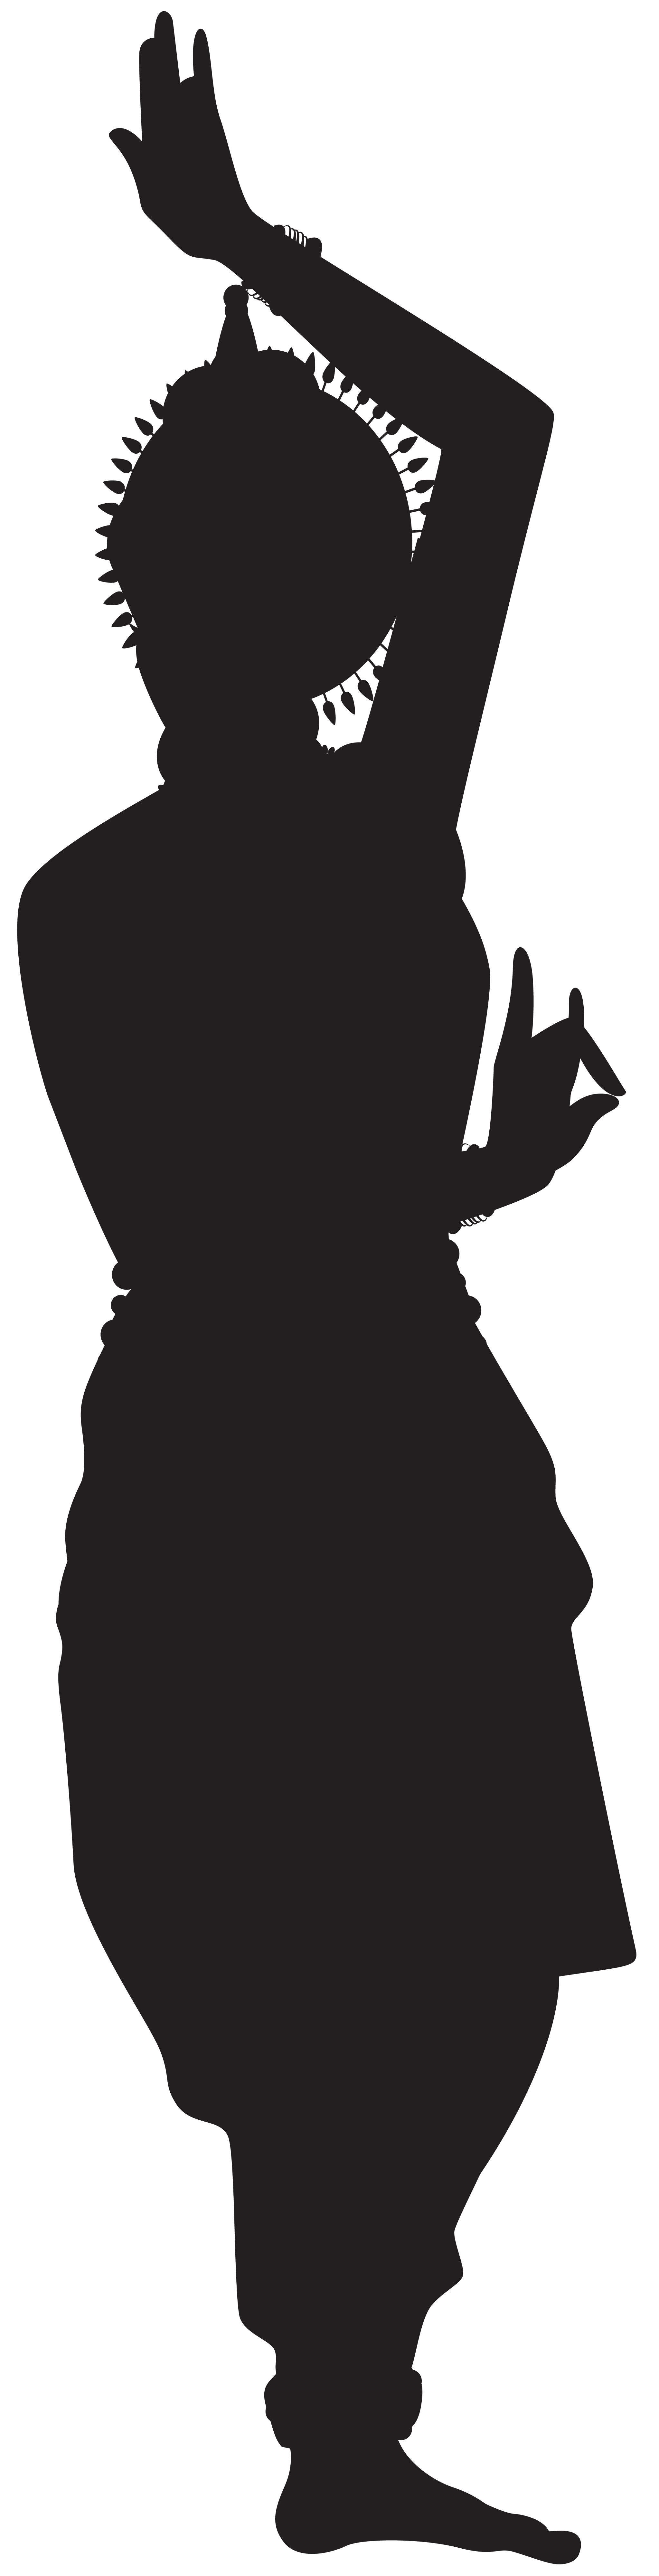 Indians clipart silhouette. Indian dancing woman png